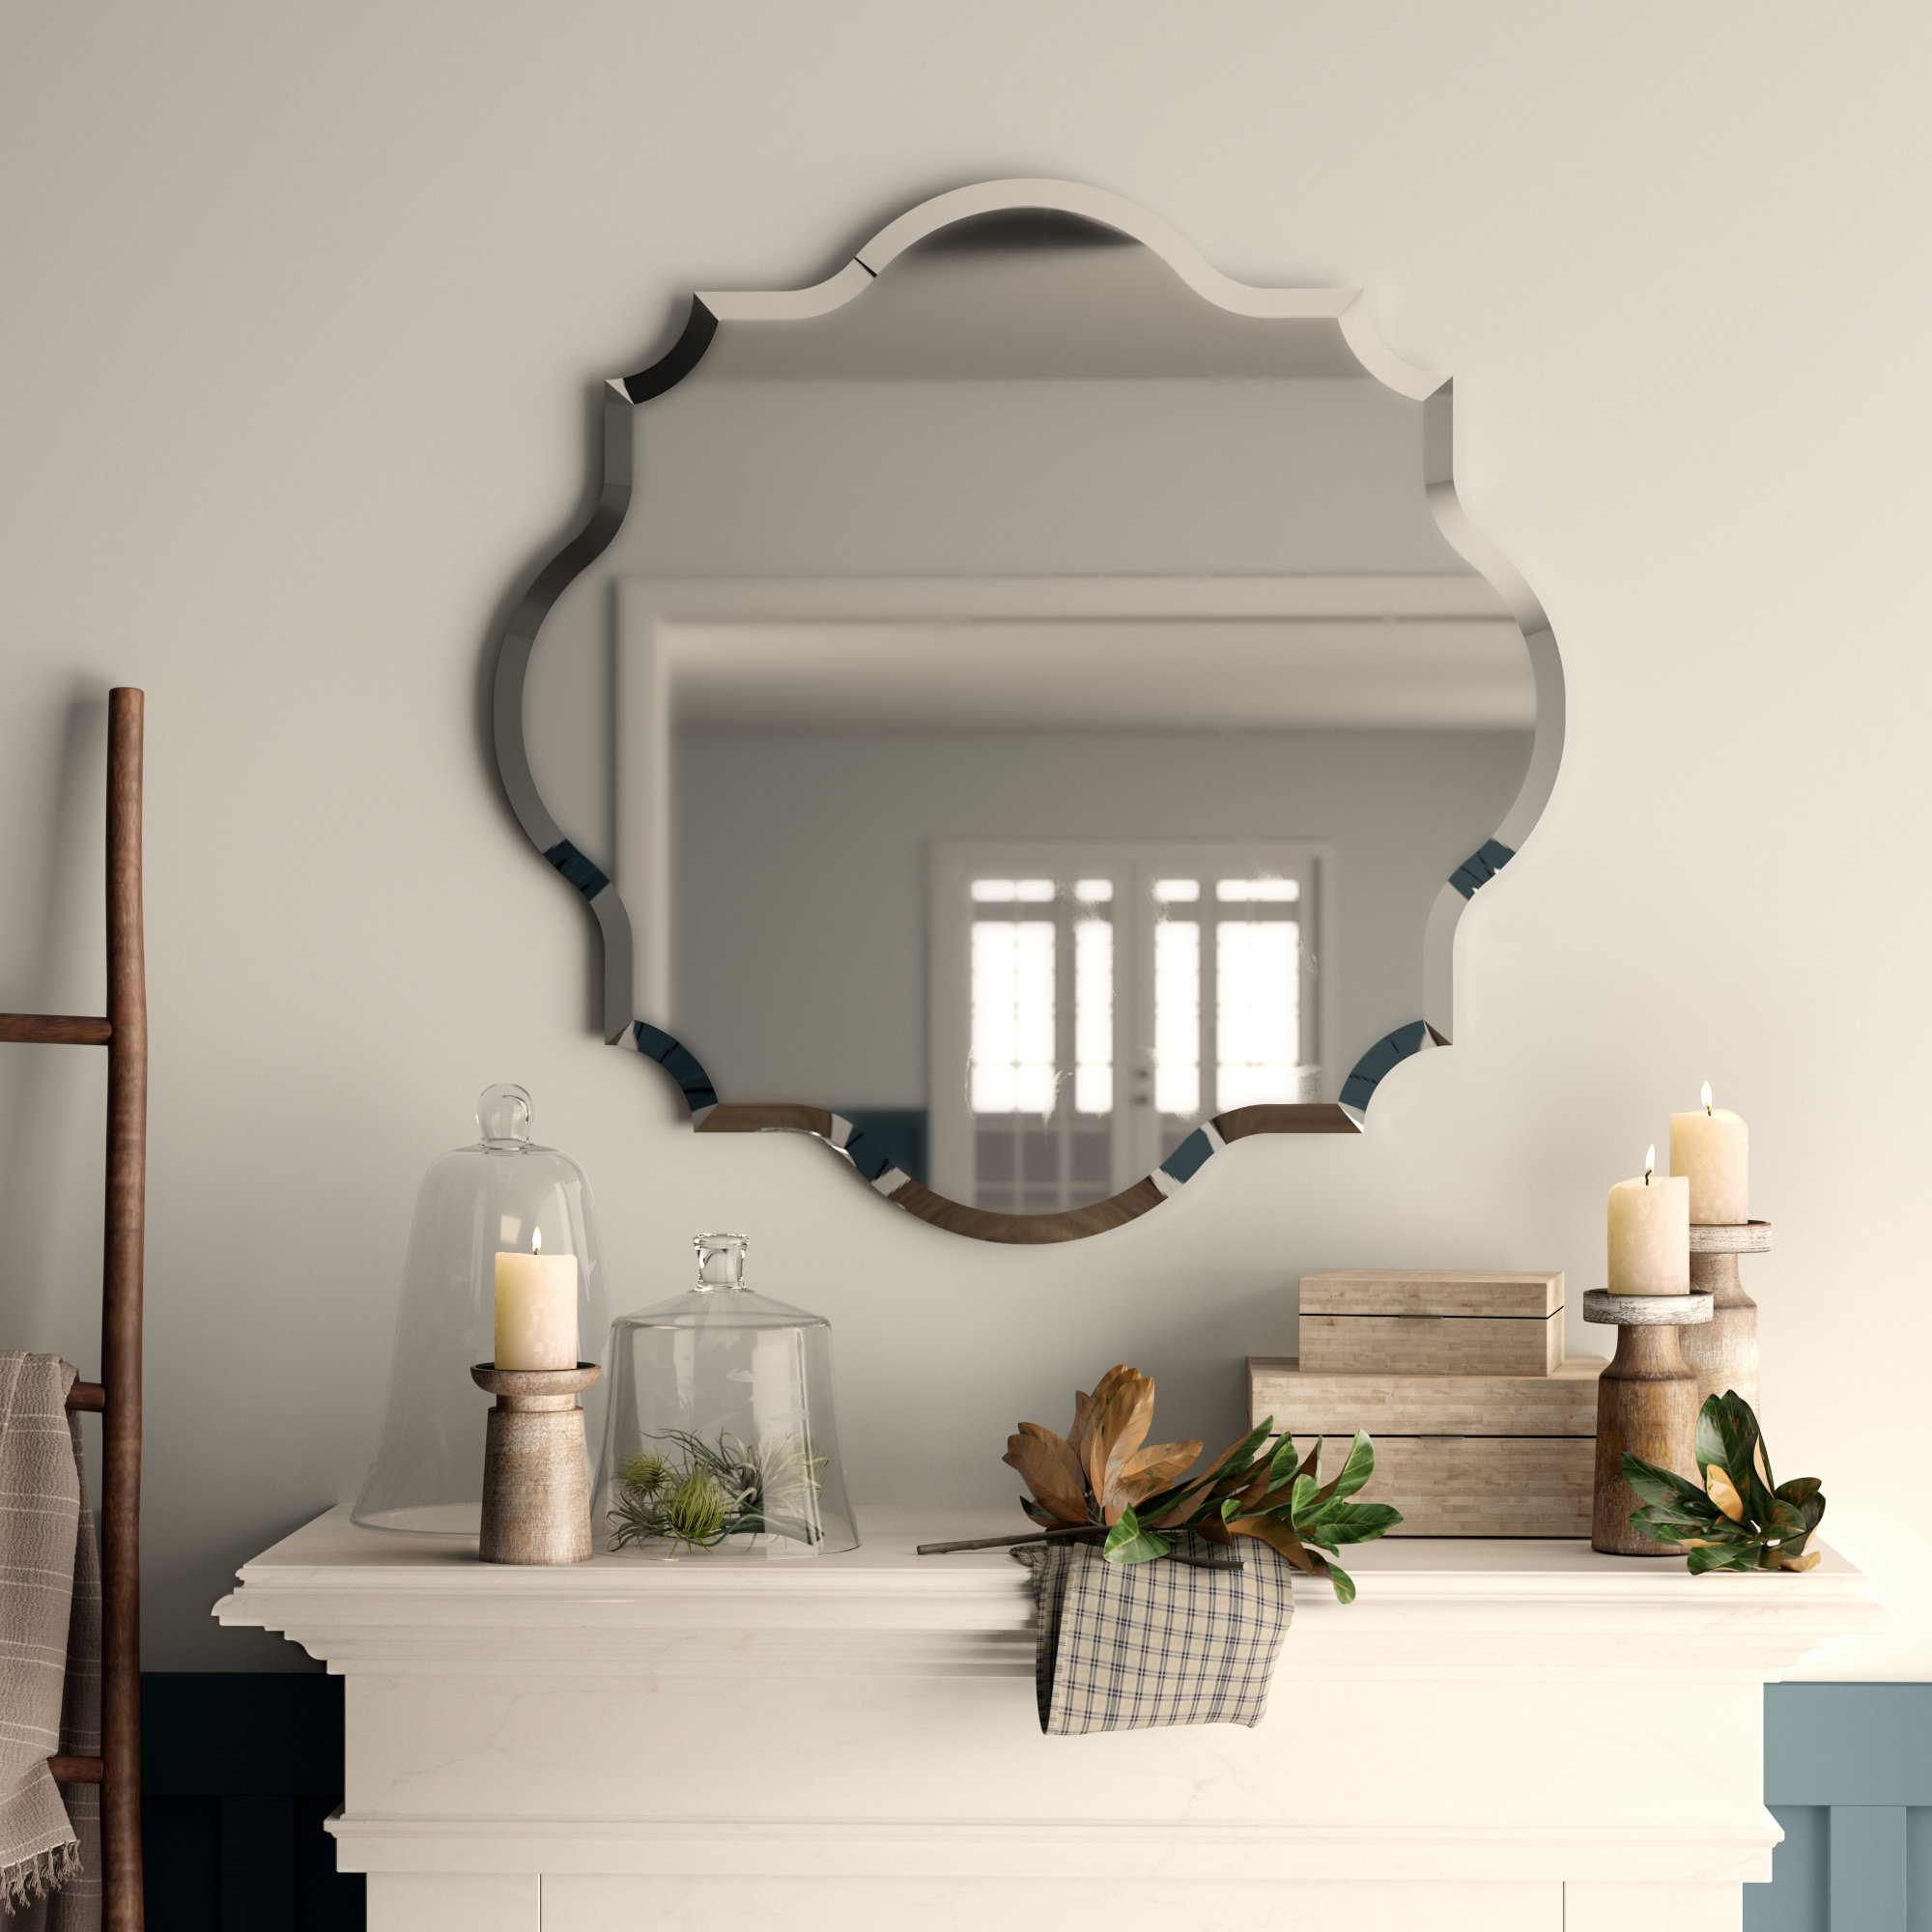 Guidinha Modern & Contemporary Accent Mirrors Intended For Well Known Helder Modern & Contemporary Wall Mirror (View 17 of 20)